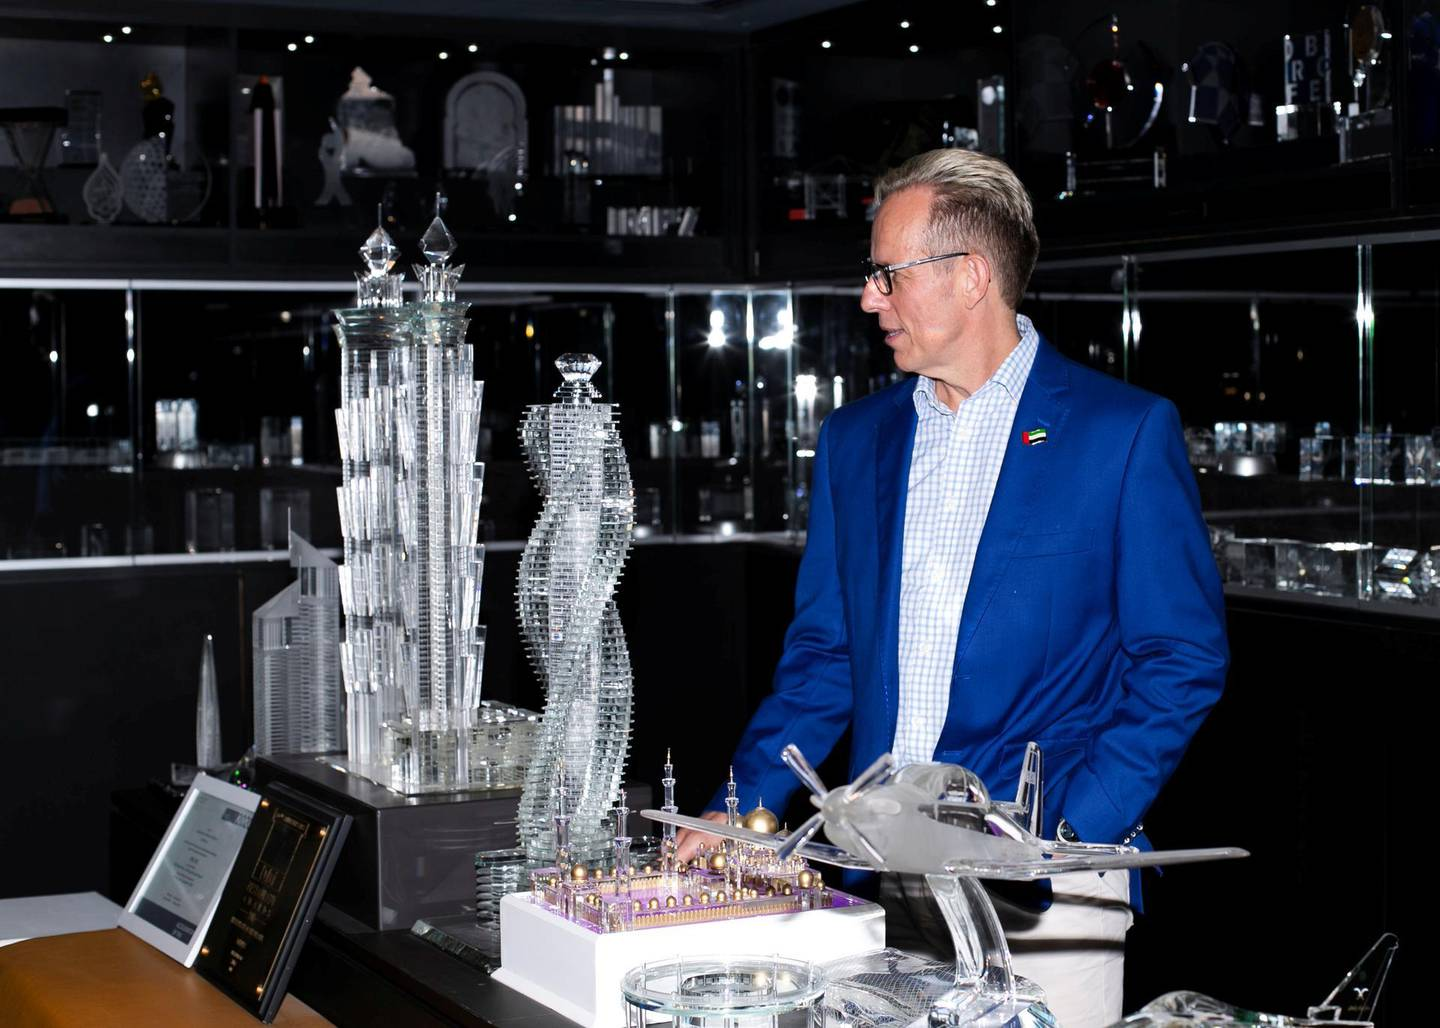 DUBAI, UNITED ARAB EMIRATES. 8 OCTOBER 2020. Lothar Hohmann, Owner, PRECISE Trading LLC, a company that produces laser engraved 2D and 3D portraits, trophies, awards, corporate gifts and mementos made of optical crystal.(Photo: Reem Mohammed/The National)Reporter:Section: